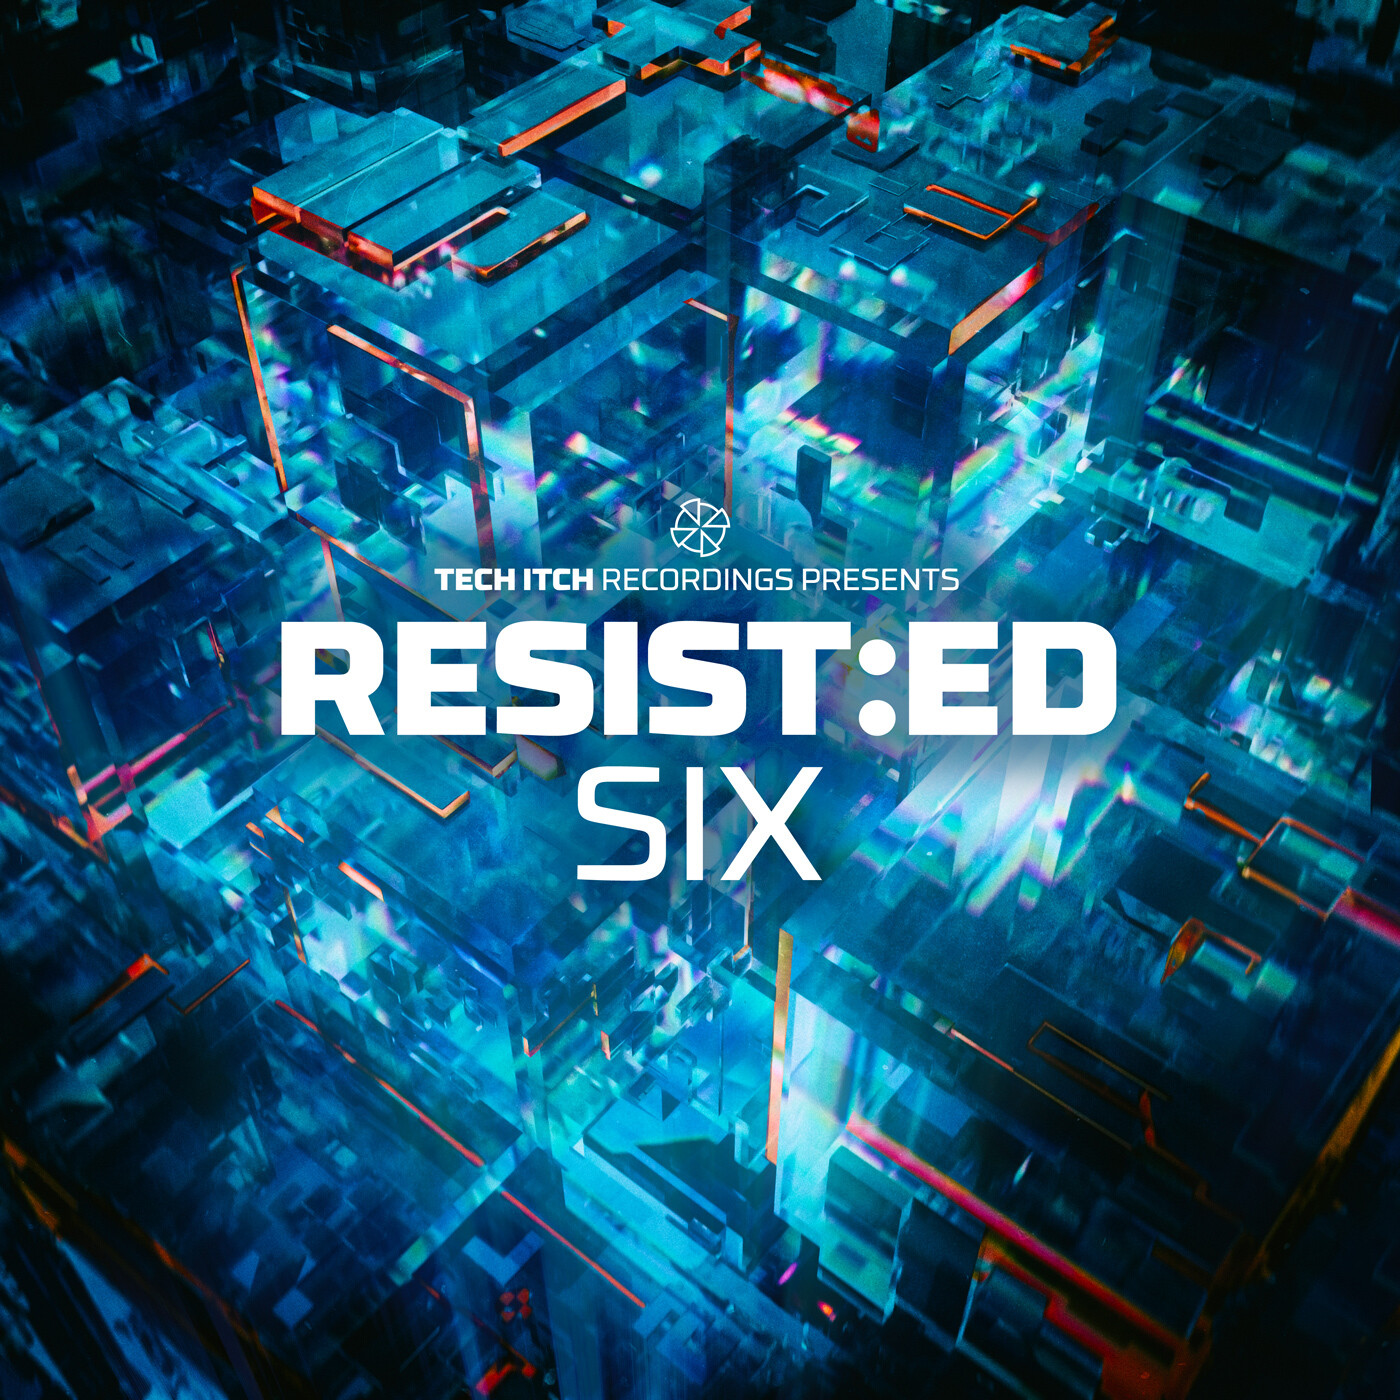 RESIST:ED SIX